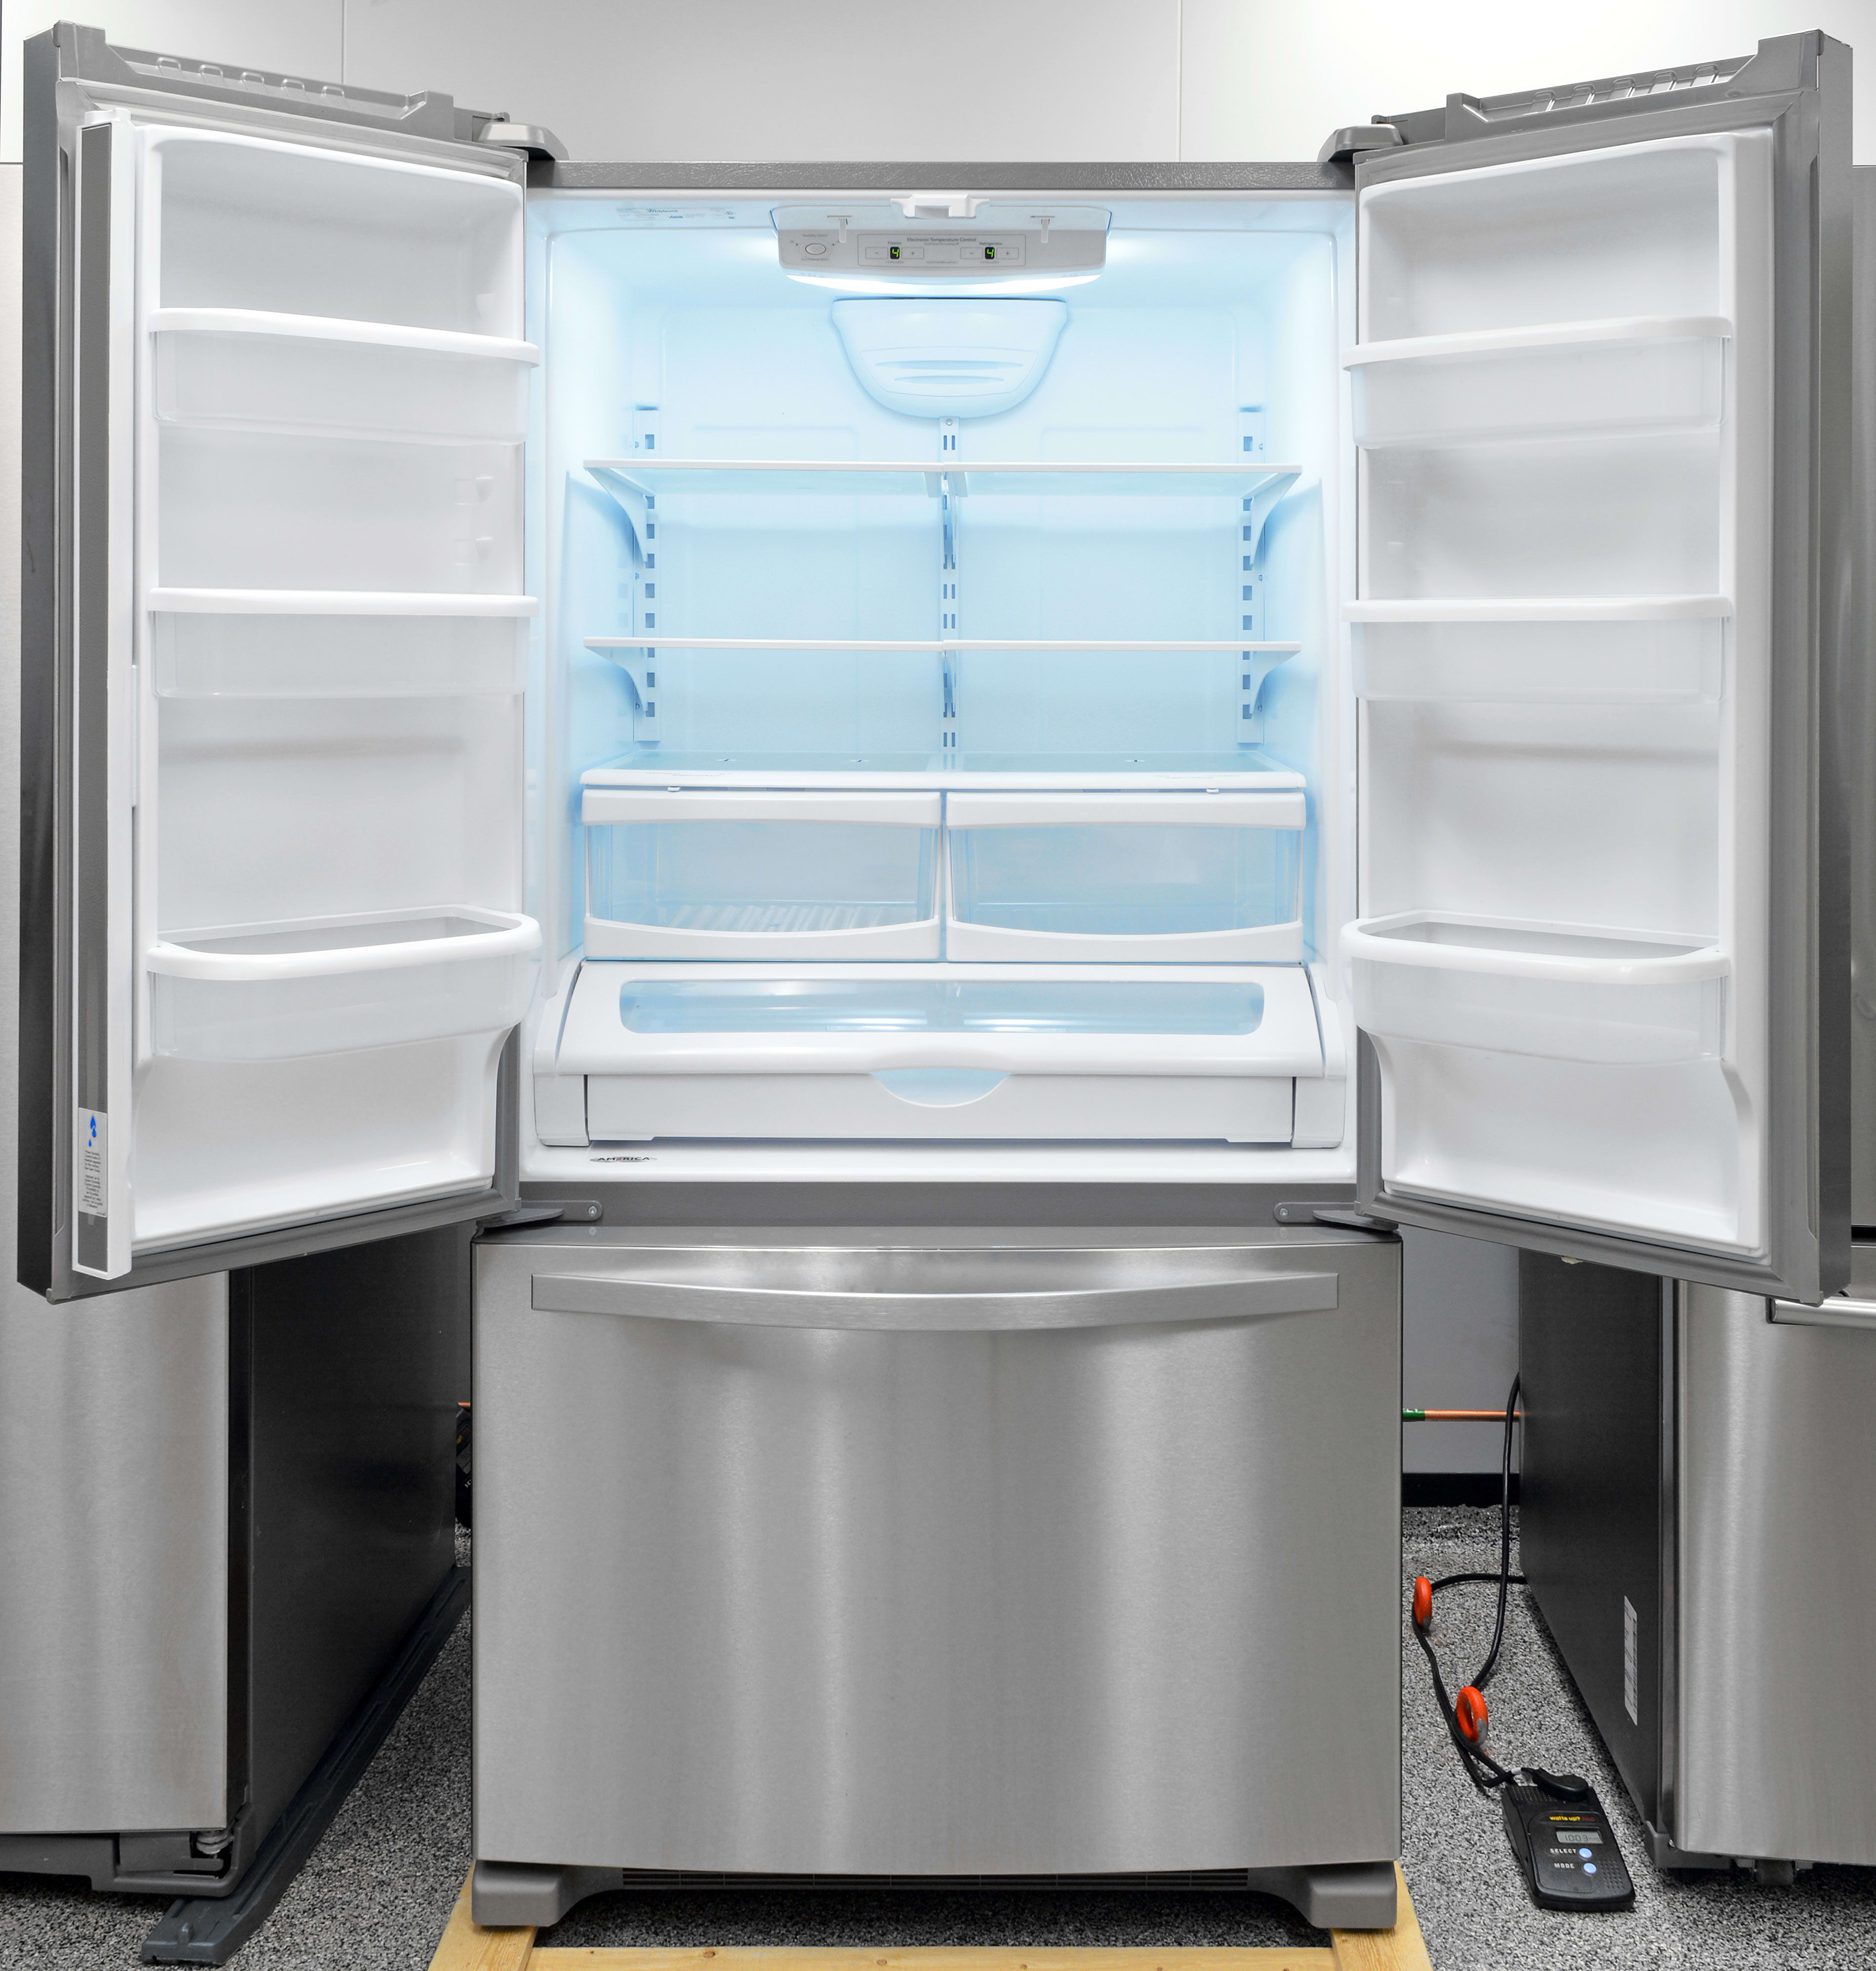 Looks, style, and efficacy make the Whirlpool WRF535SMBM an unparalleled bargain.